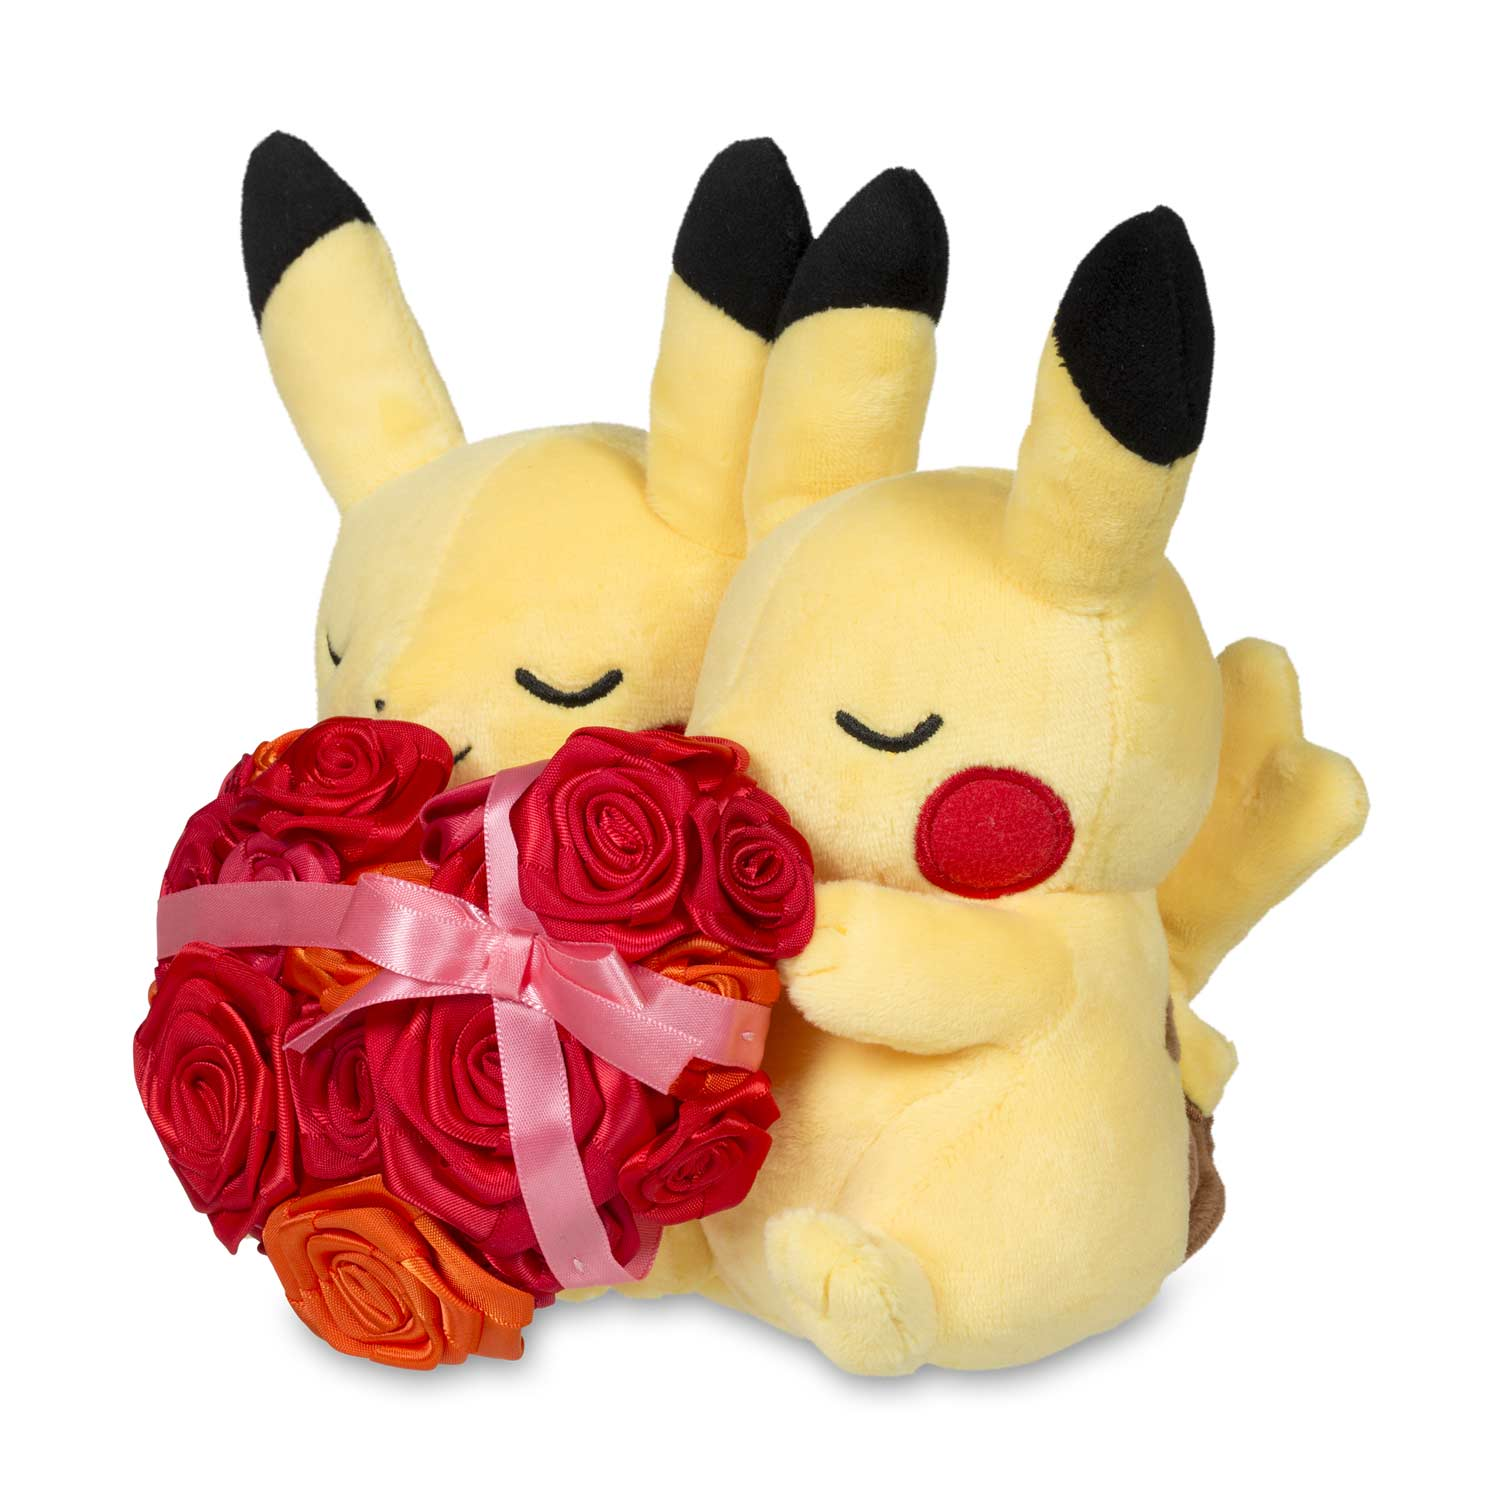 0961be9e ... for Paired Pikachu Celebrations: Sweetheart Pikachu Plush - 8 In. from Pokemon  Center. _5_3074457345618259663_3074457345618262055_3074457345618268804